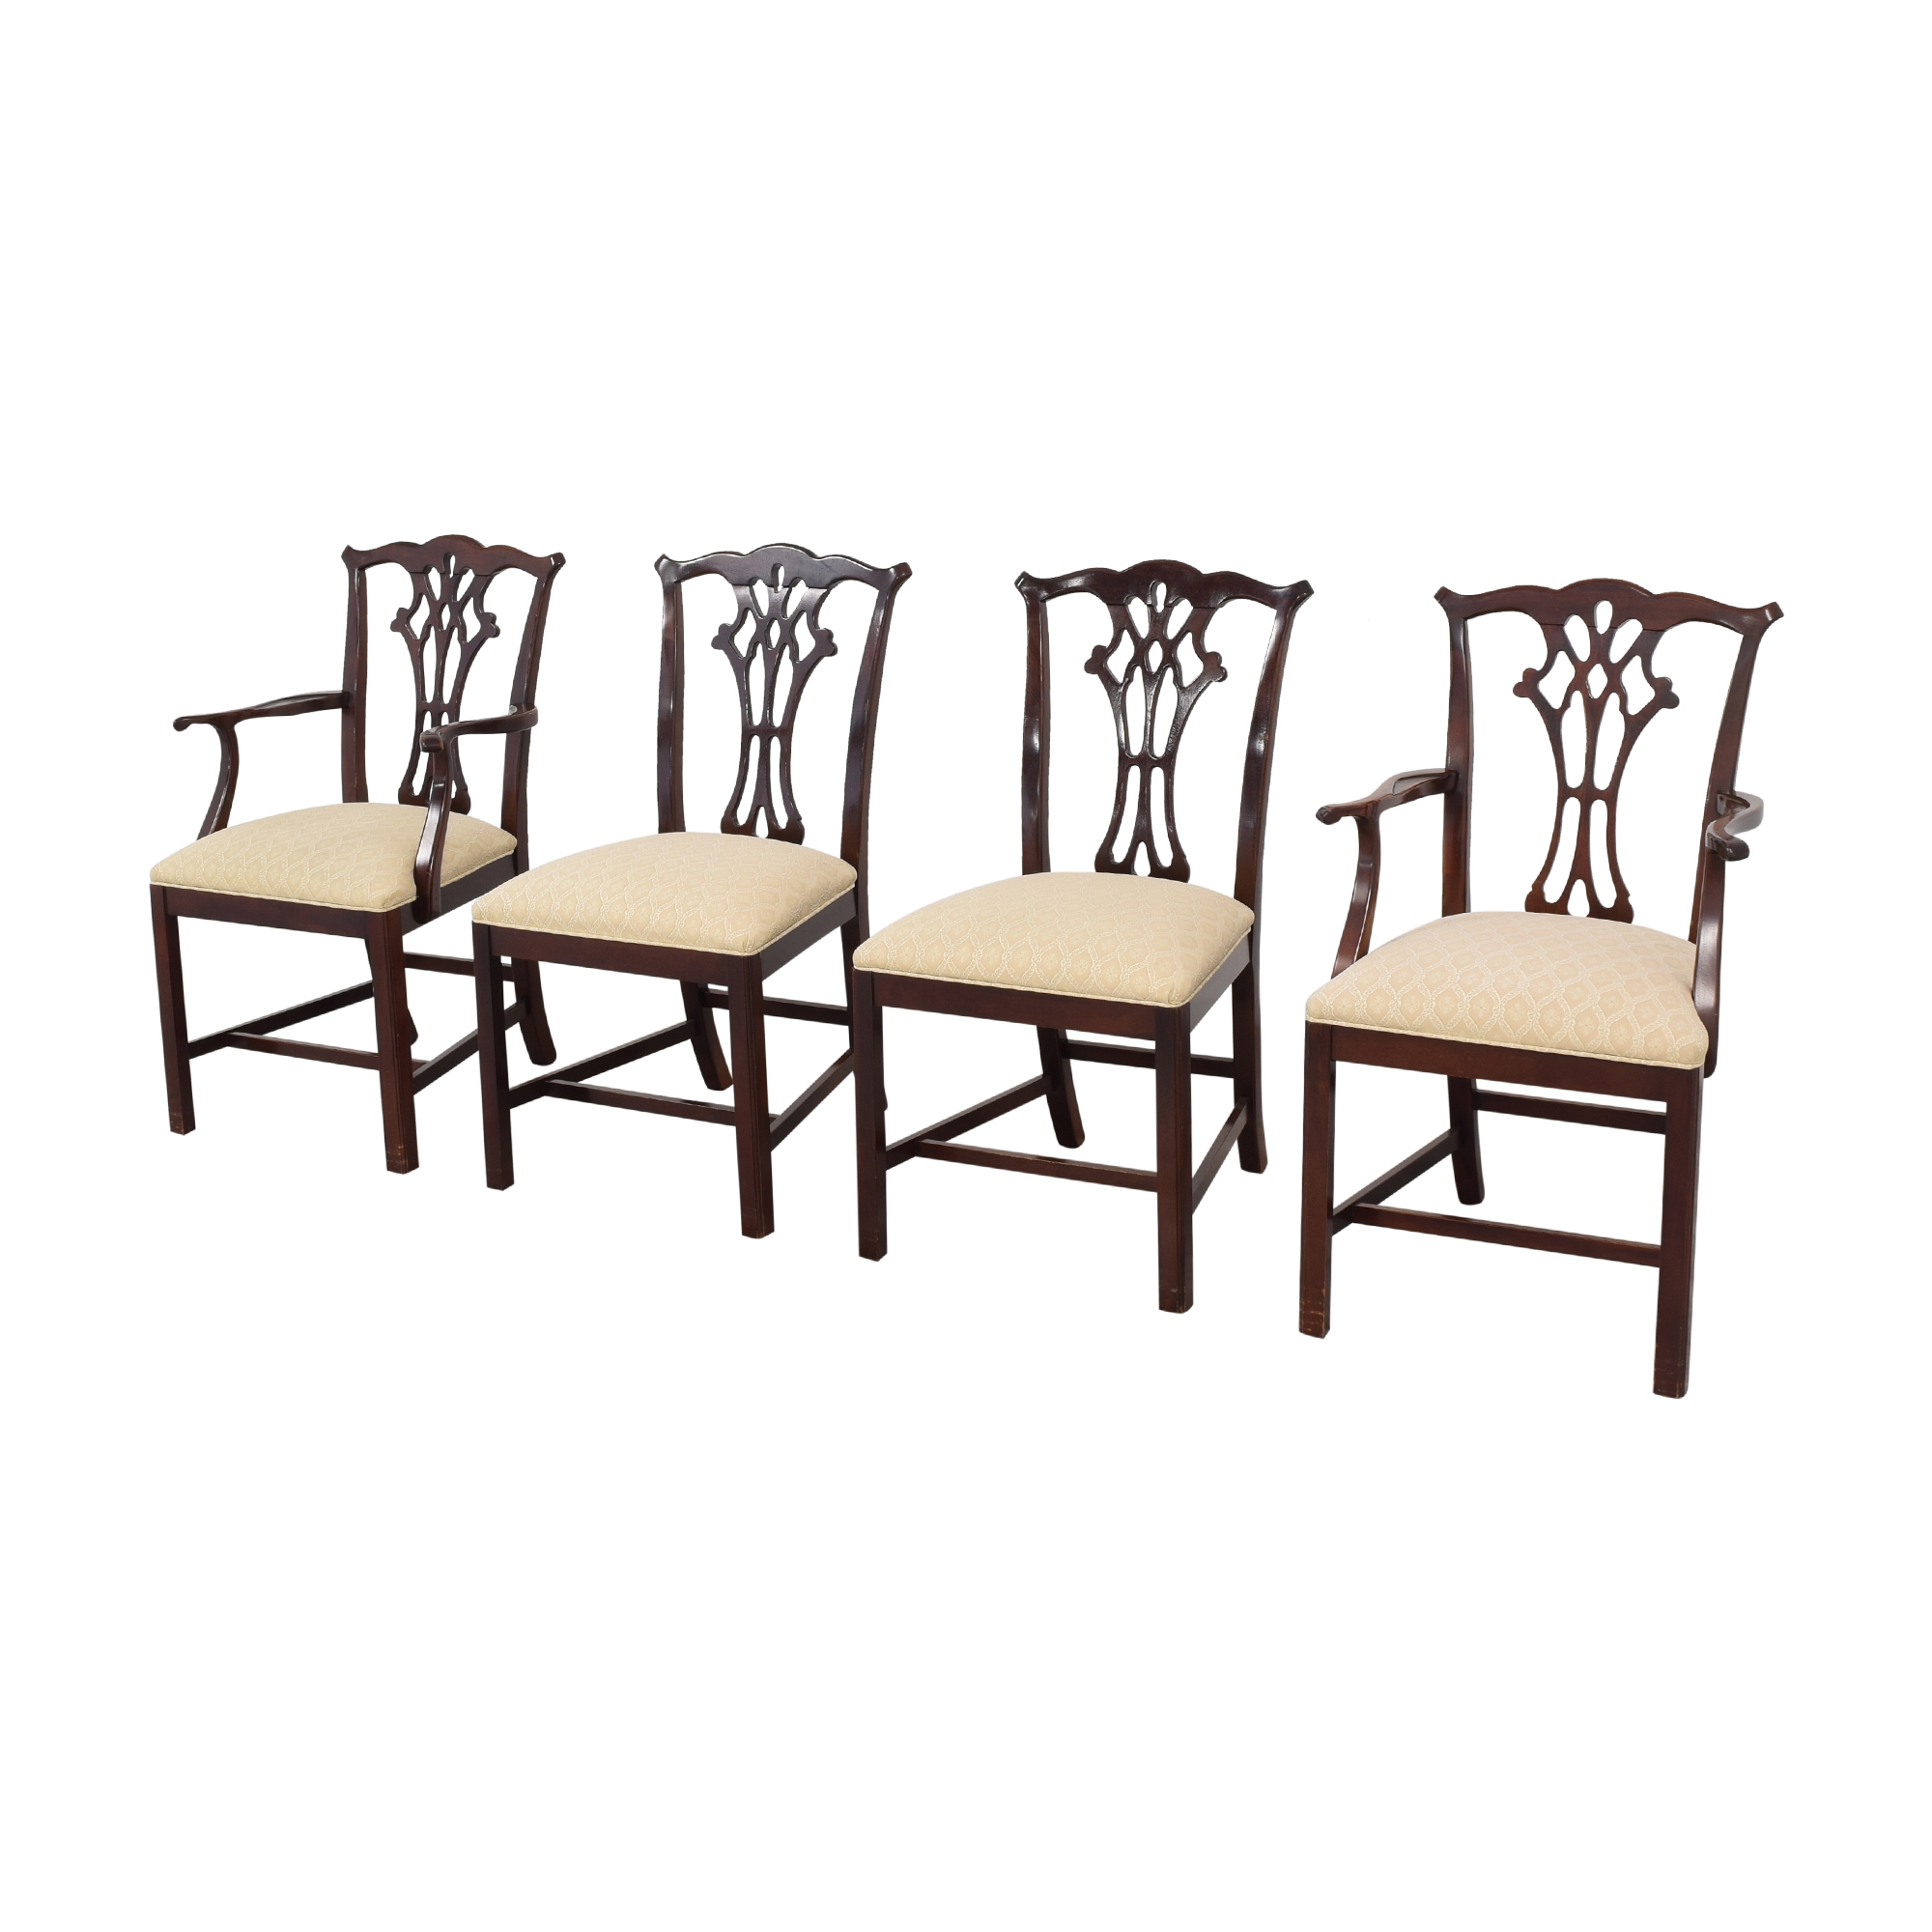 Hickory White Hickory White Chippendale Dining Chairs dimensions